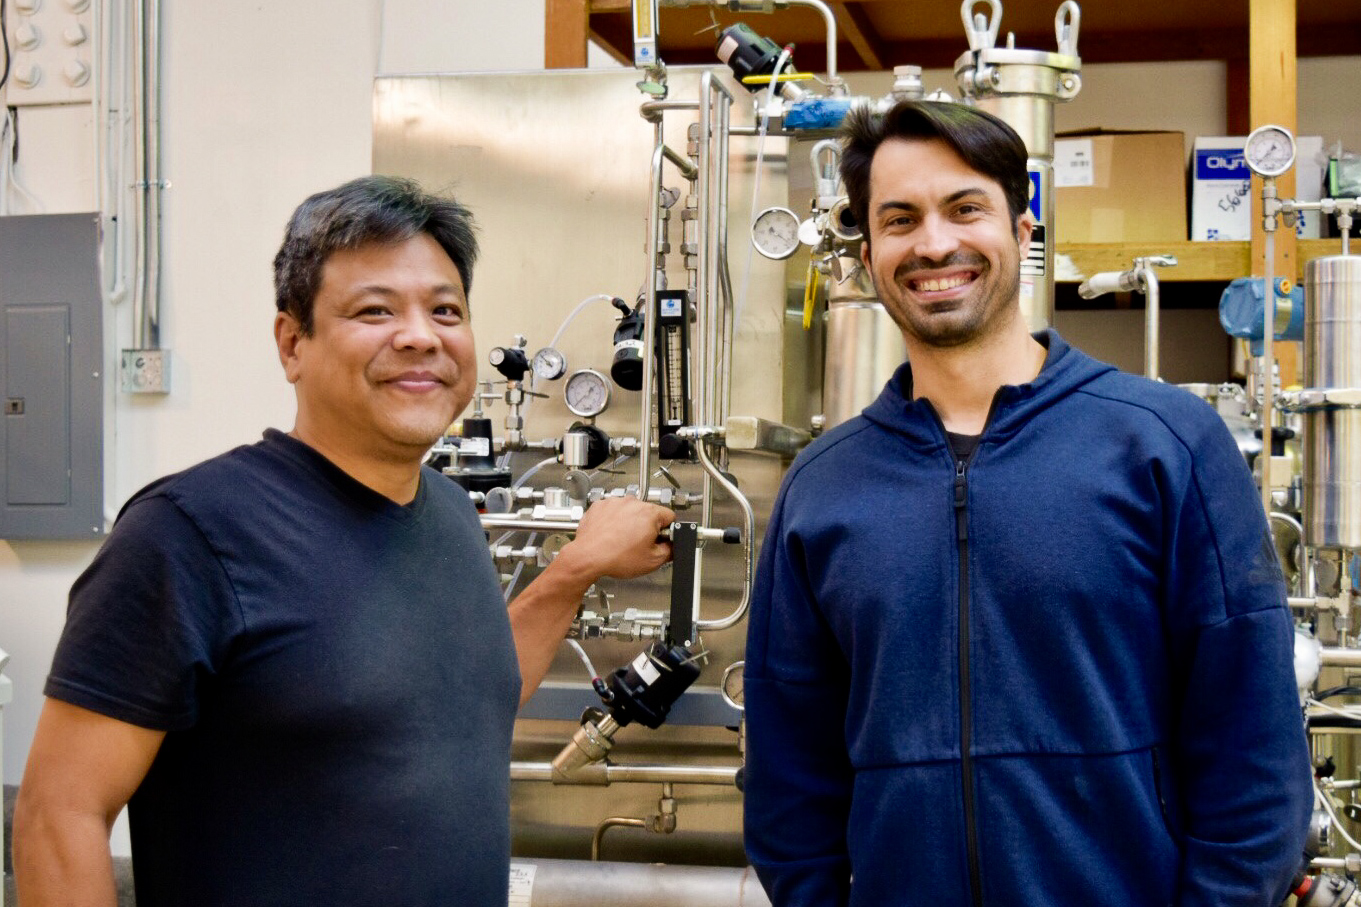 Wild Earth team Dr. Ron Shigeta & Ryan Bethencourt smiling in their research facility | Source: Wild Earth